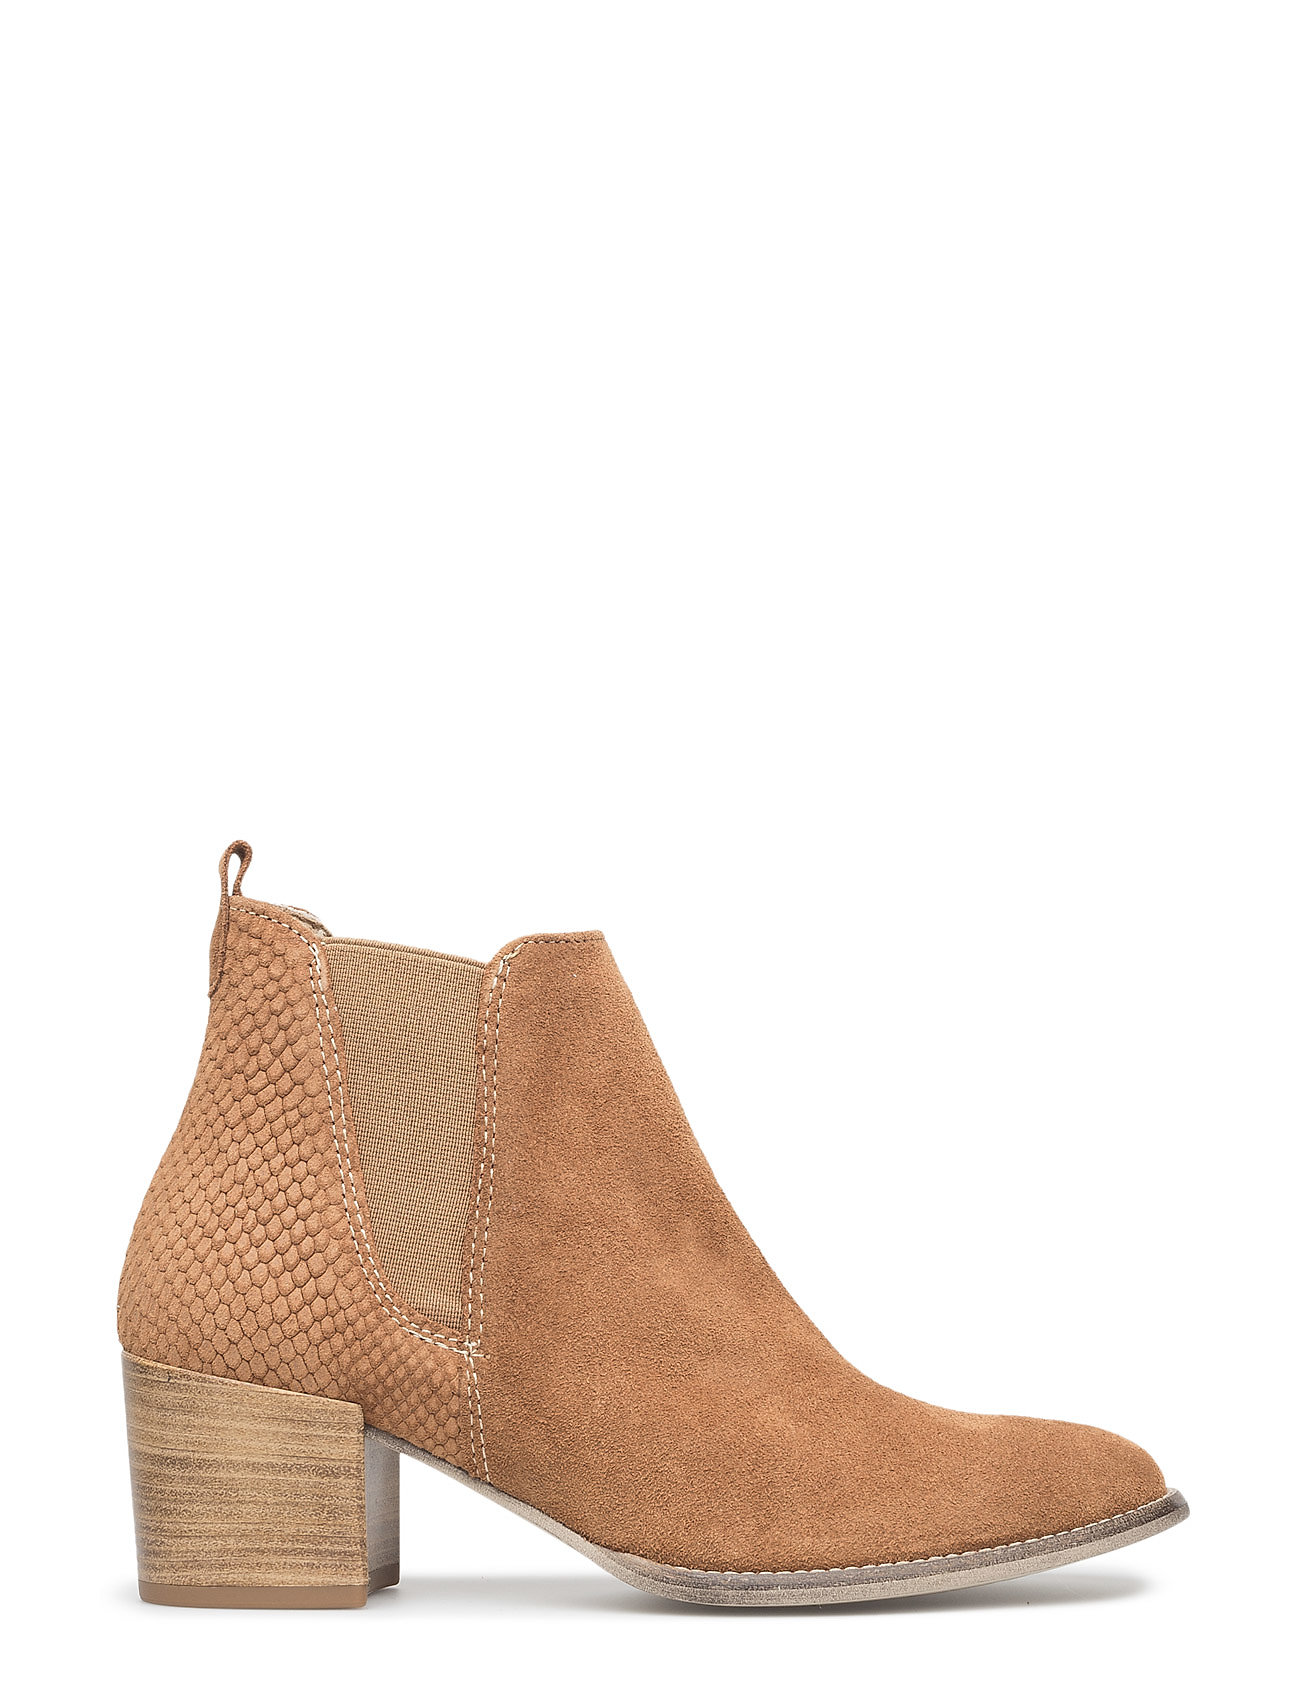 Tamaris - Woms Boots - cuoio - 1